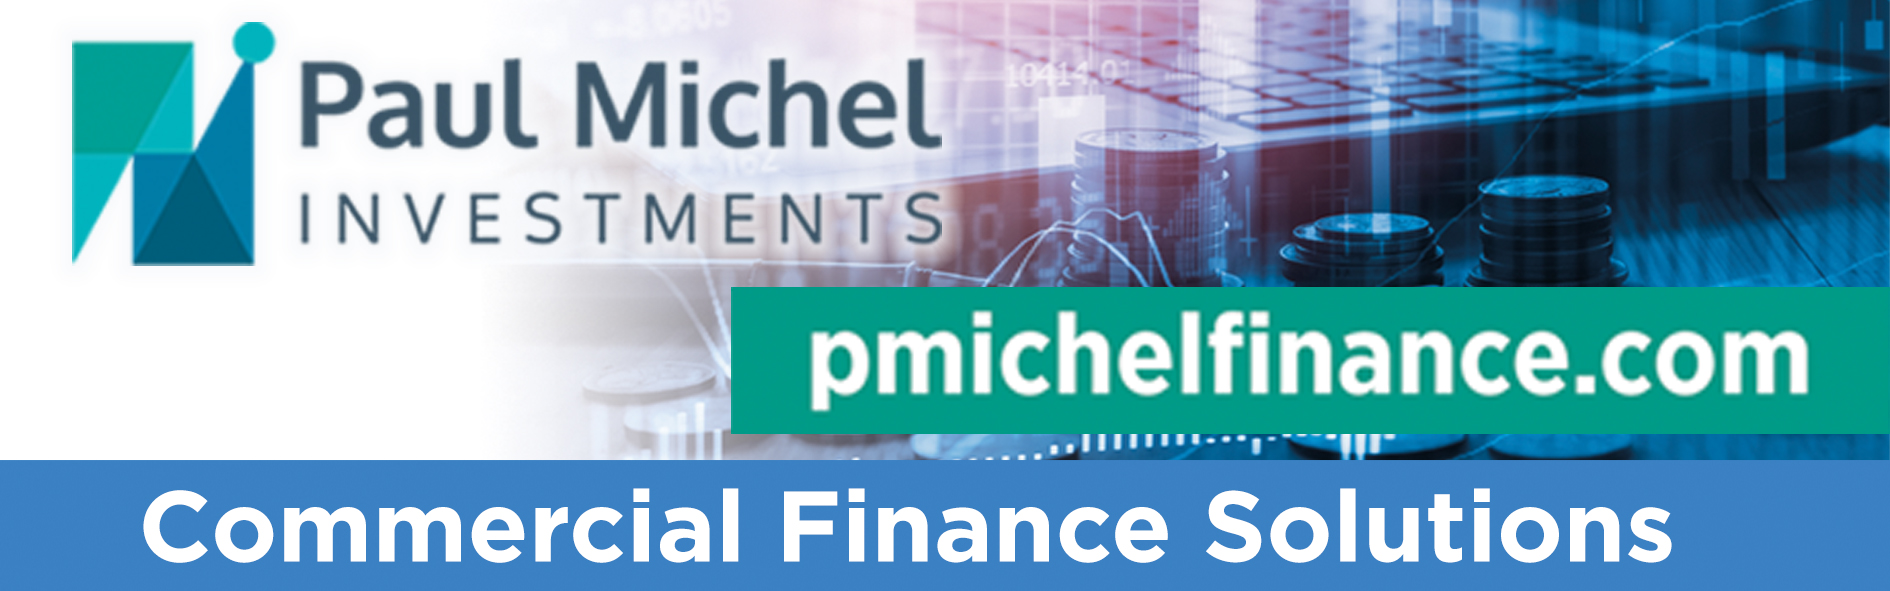 Paul Michel Finance Commercial Finance Solutions